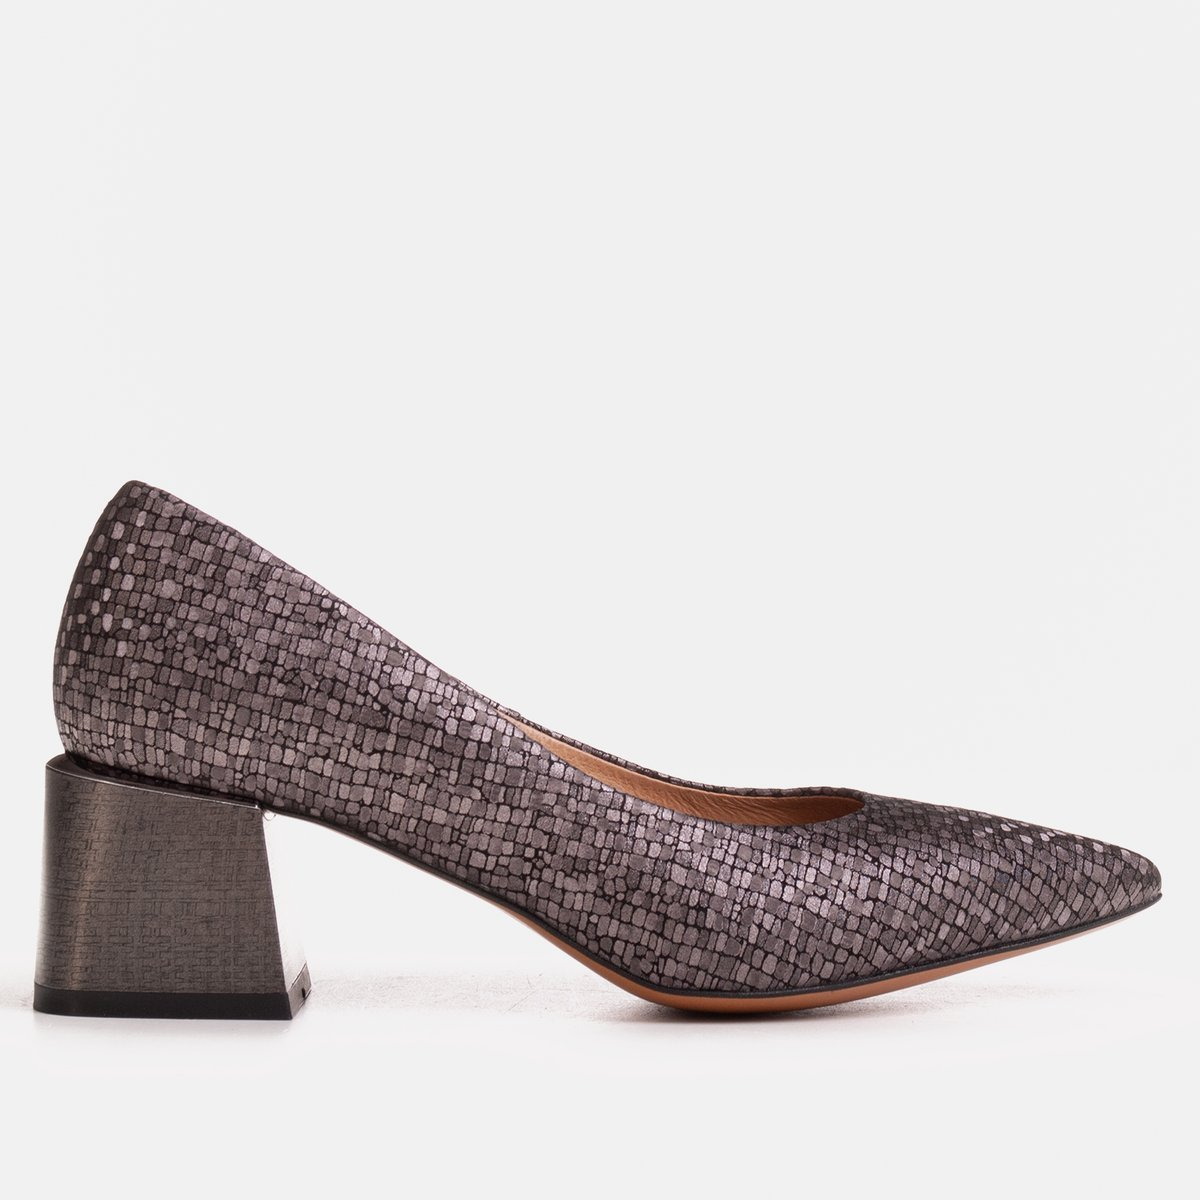 Elegant women's pumps made of embossed leather - MarcoShoes.eu Online Shop